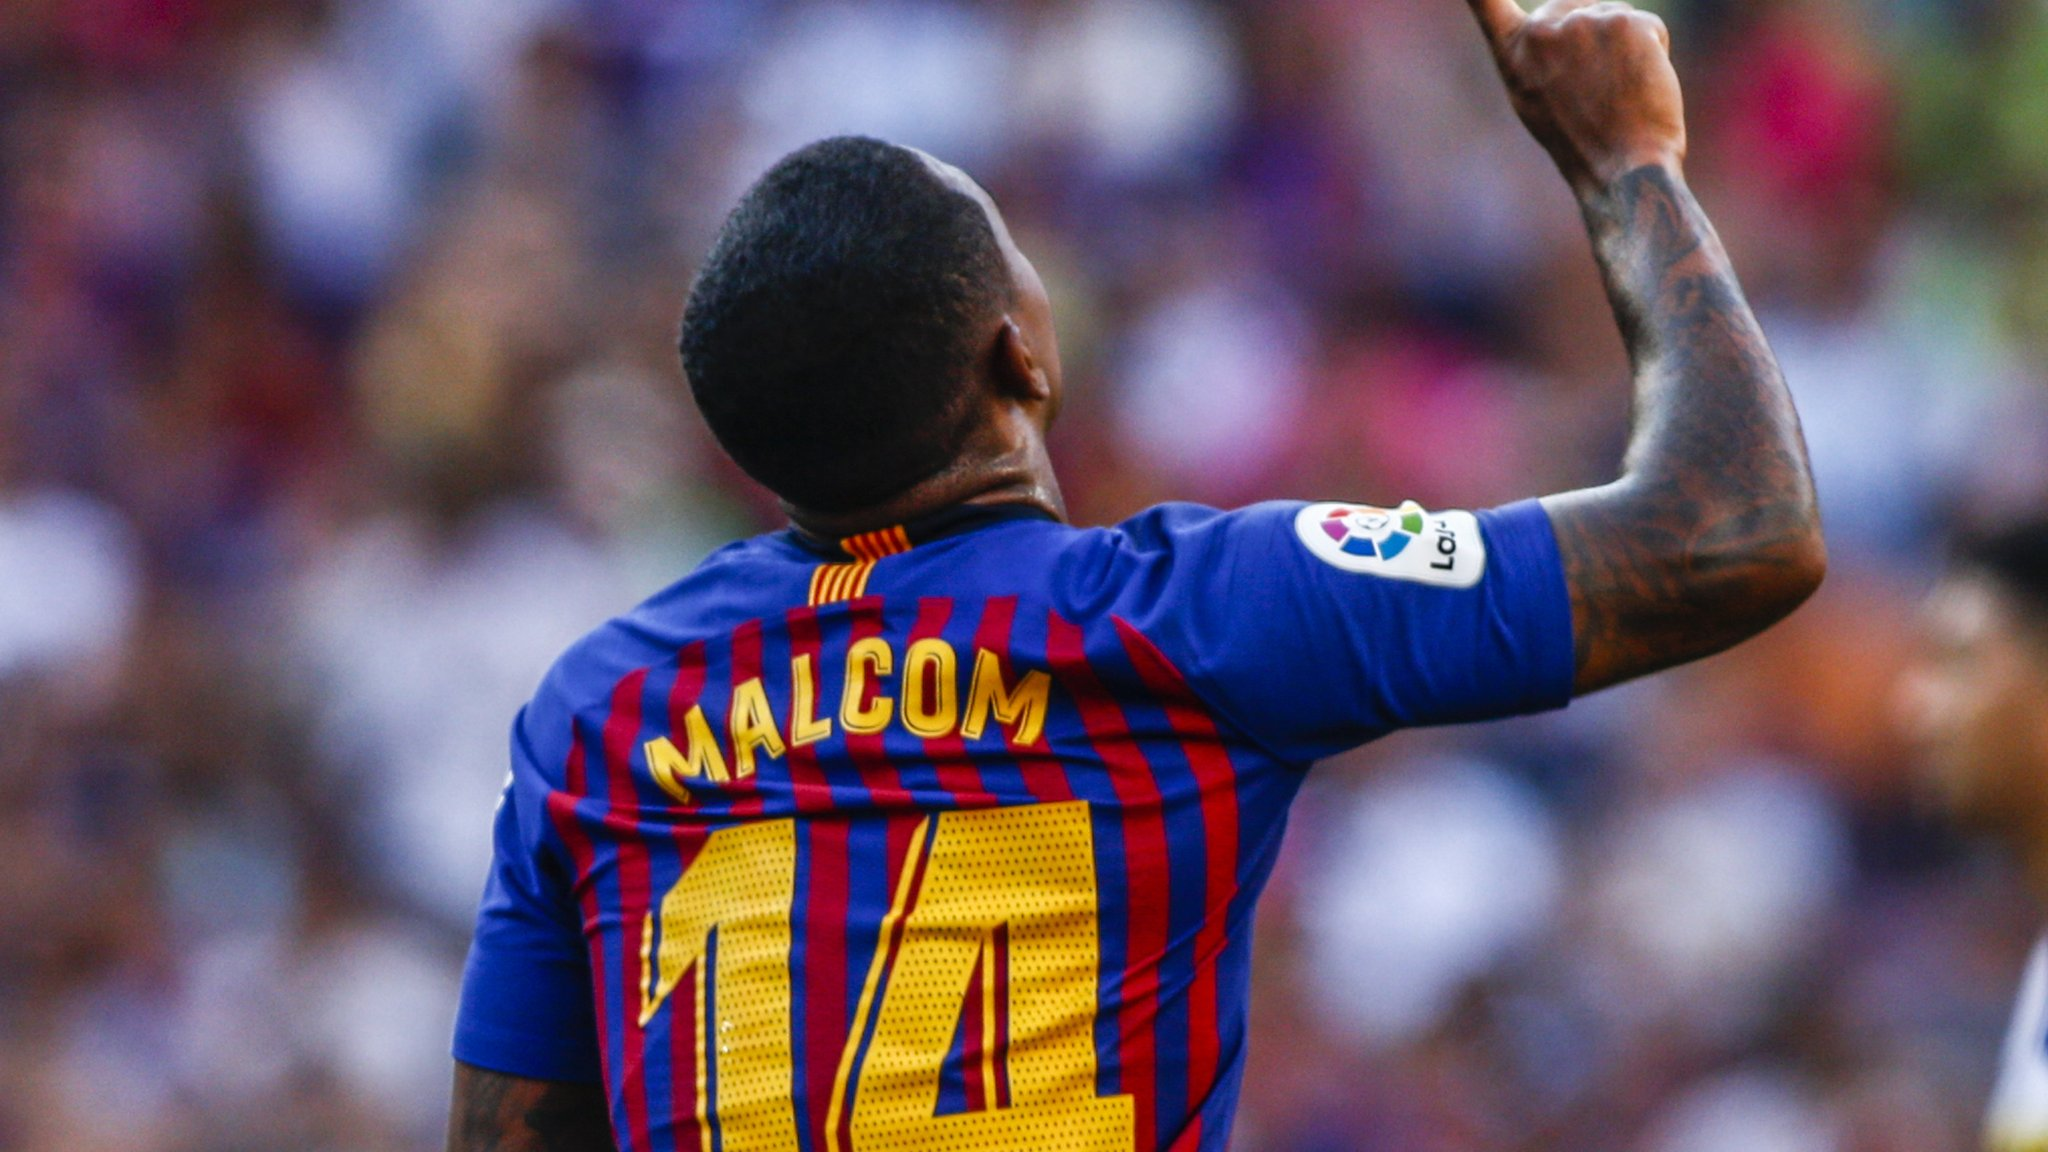 Barcelona 3-0 Boca Juniors: New signing Malcom scores in Joan Gamper Trophy friendly